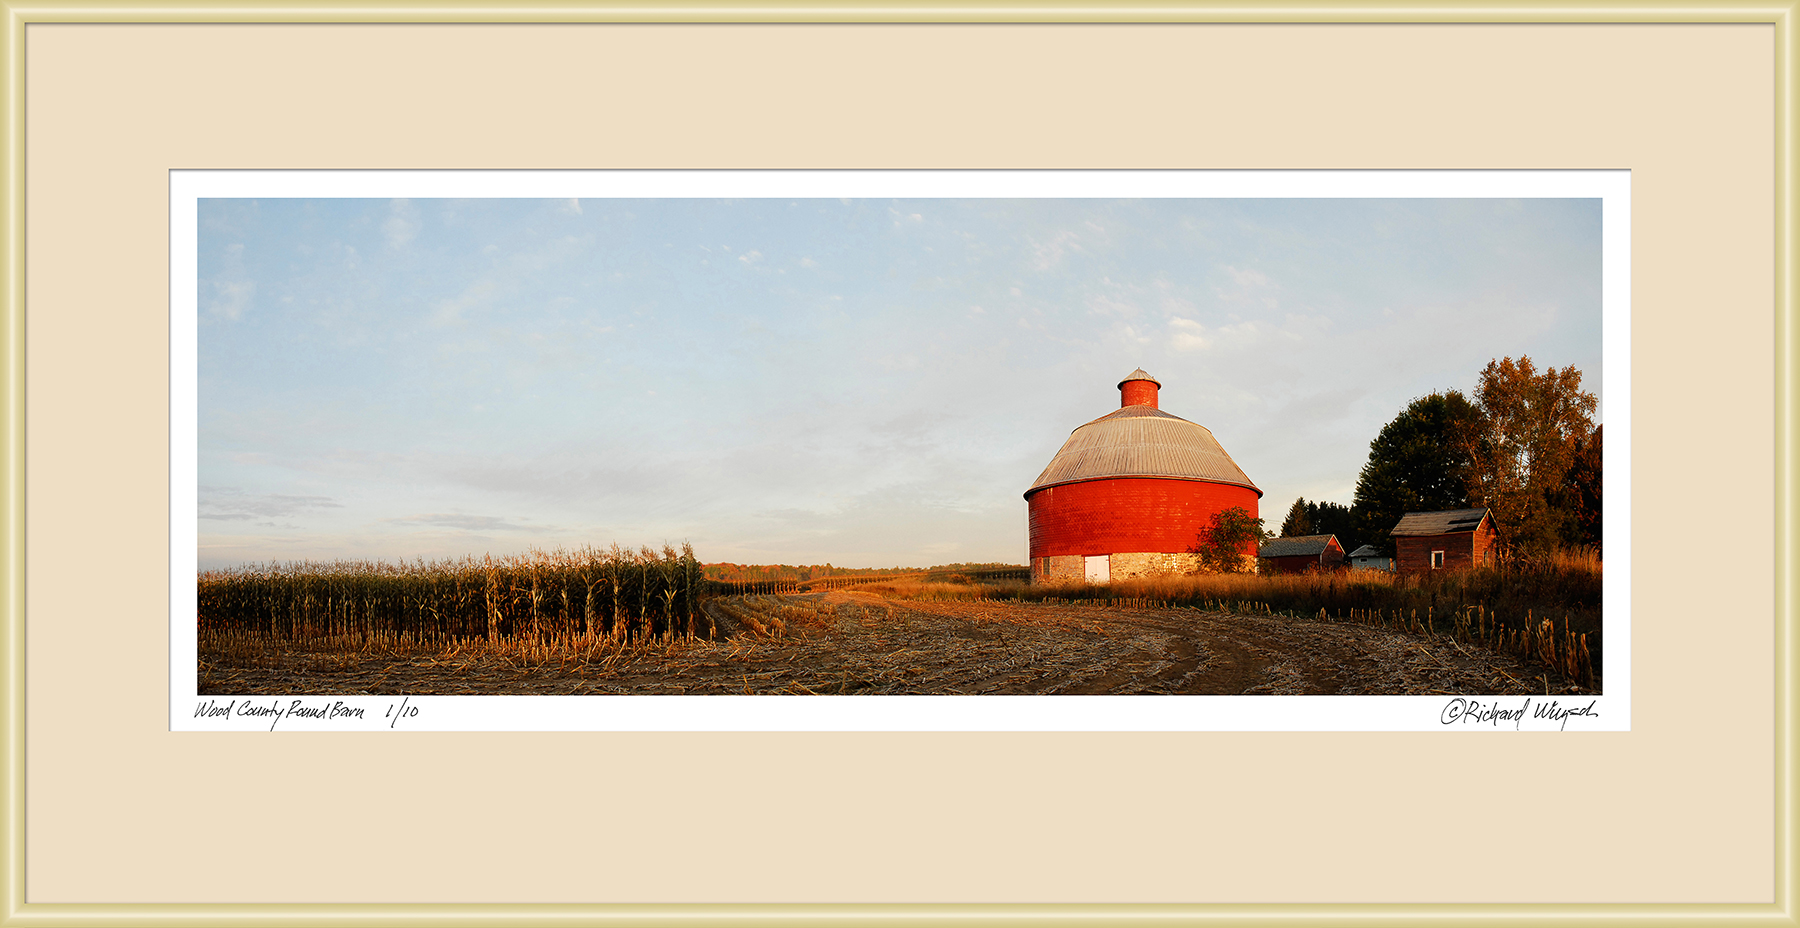 Wood-County-Round-Barn-32